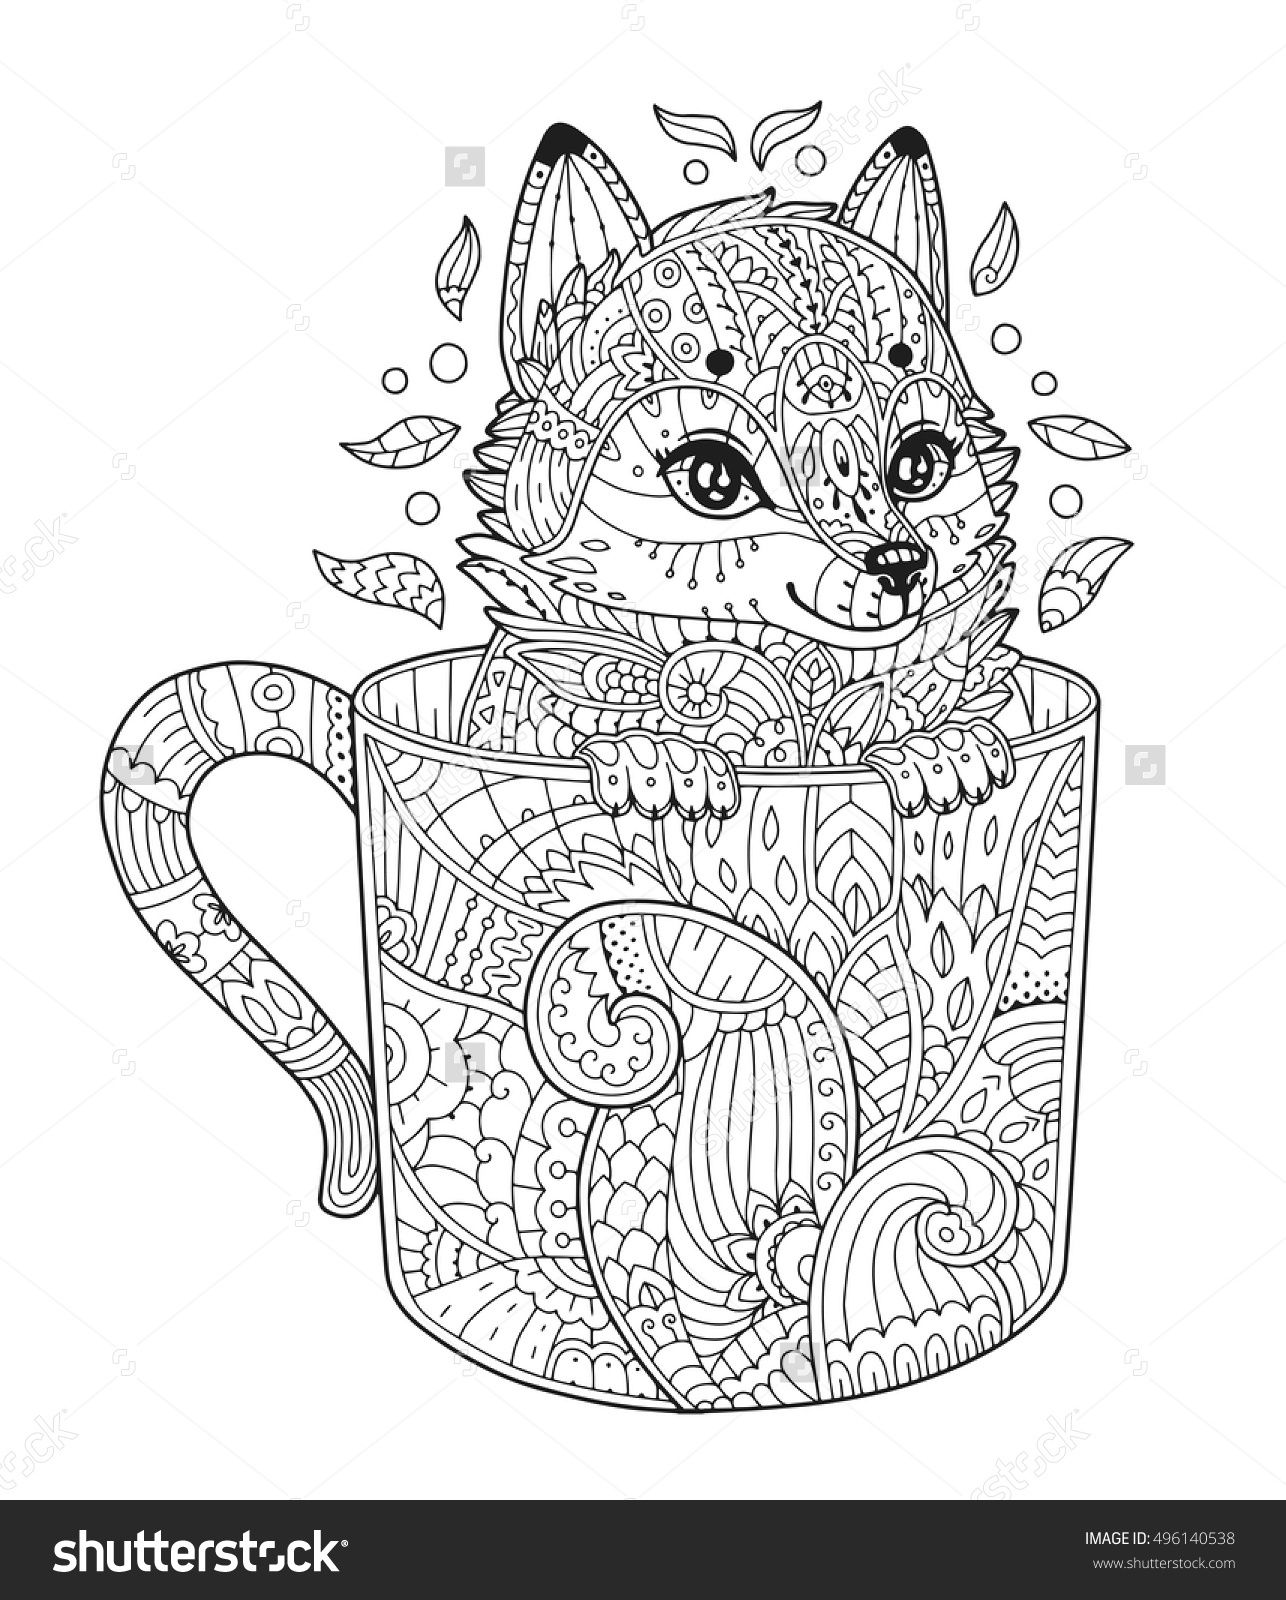 Fox In Cup Adult Antistress Coloring Page With Animal In